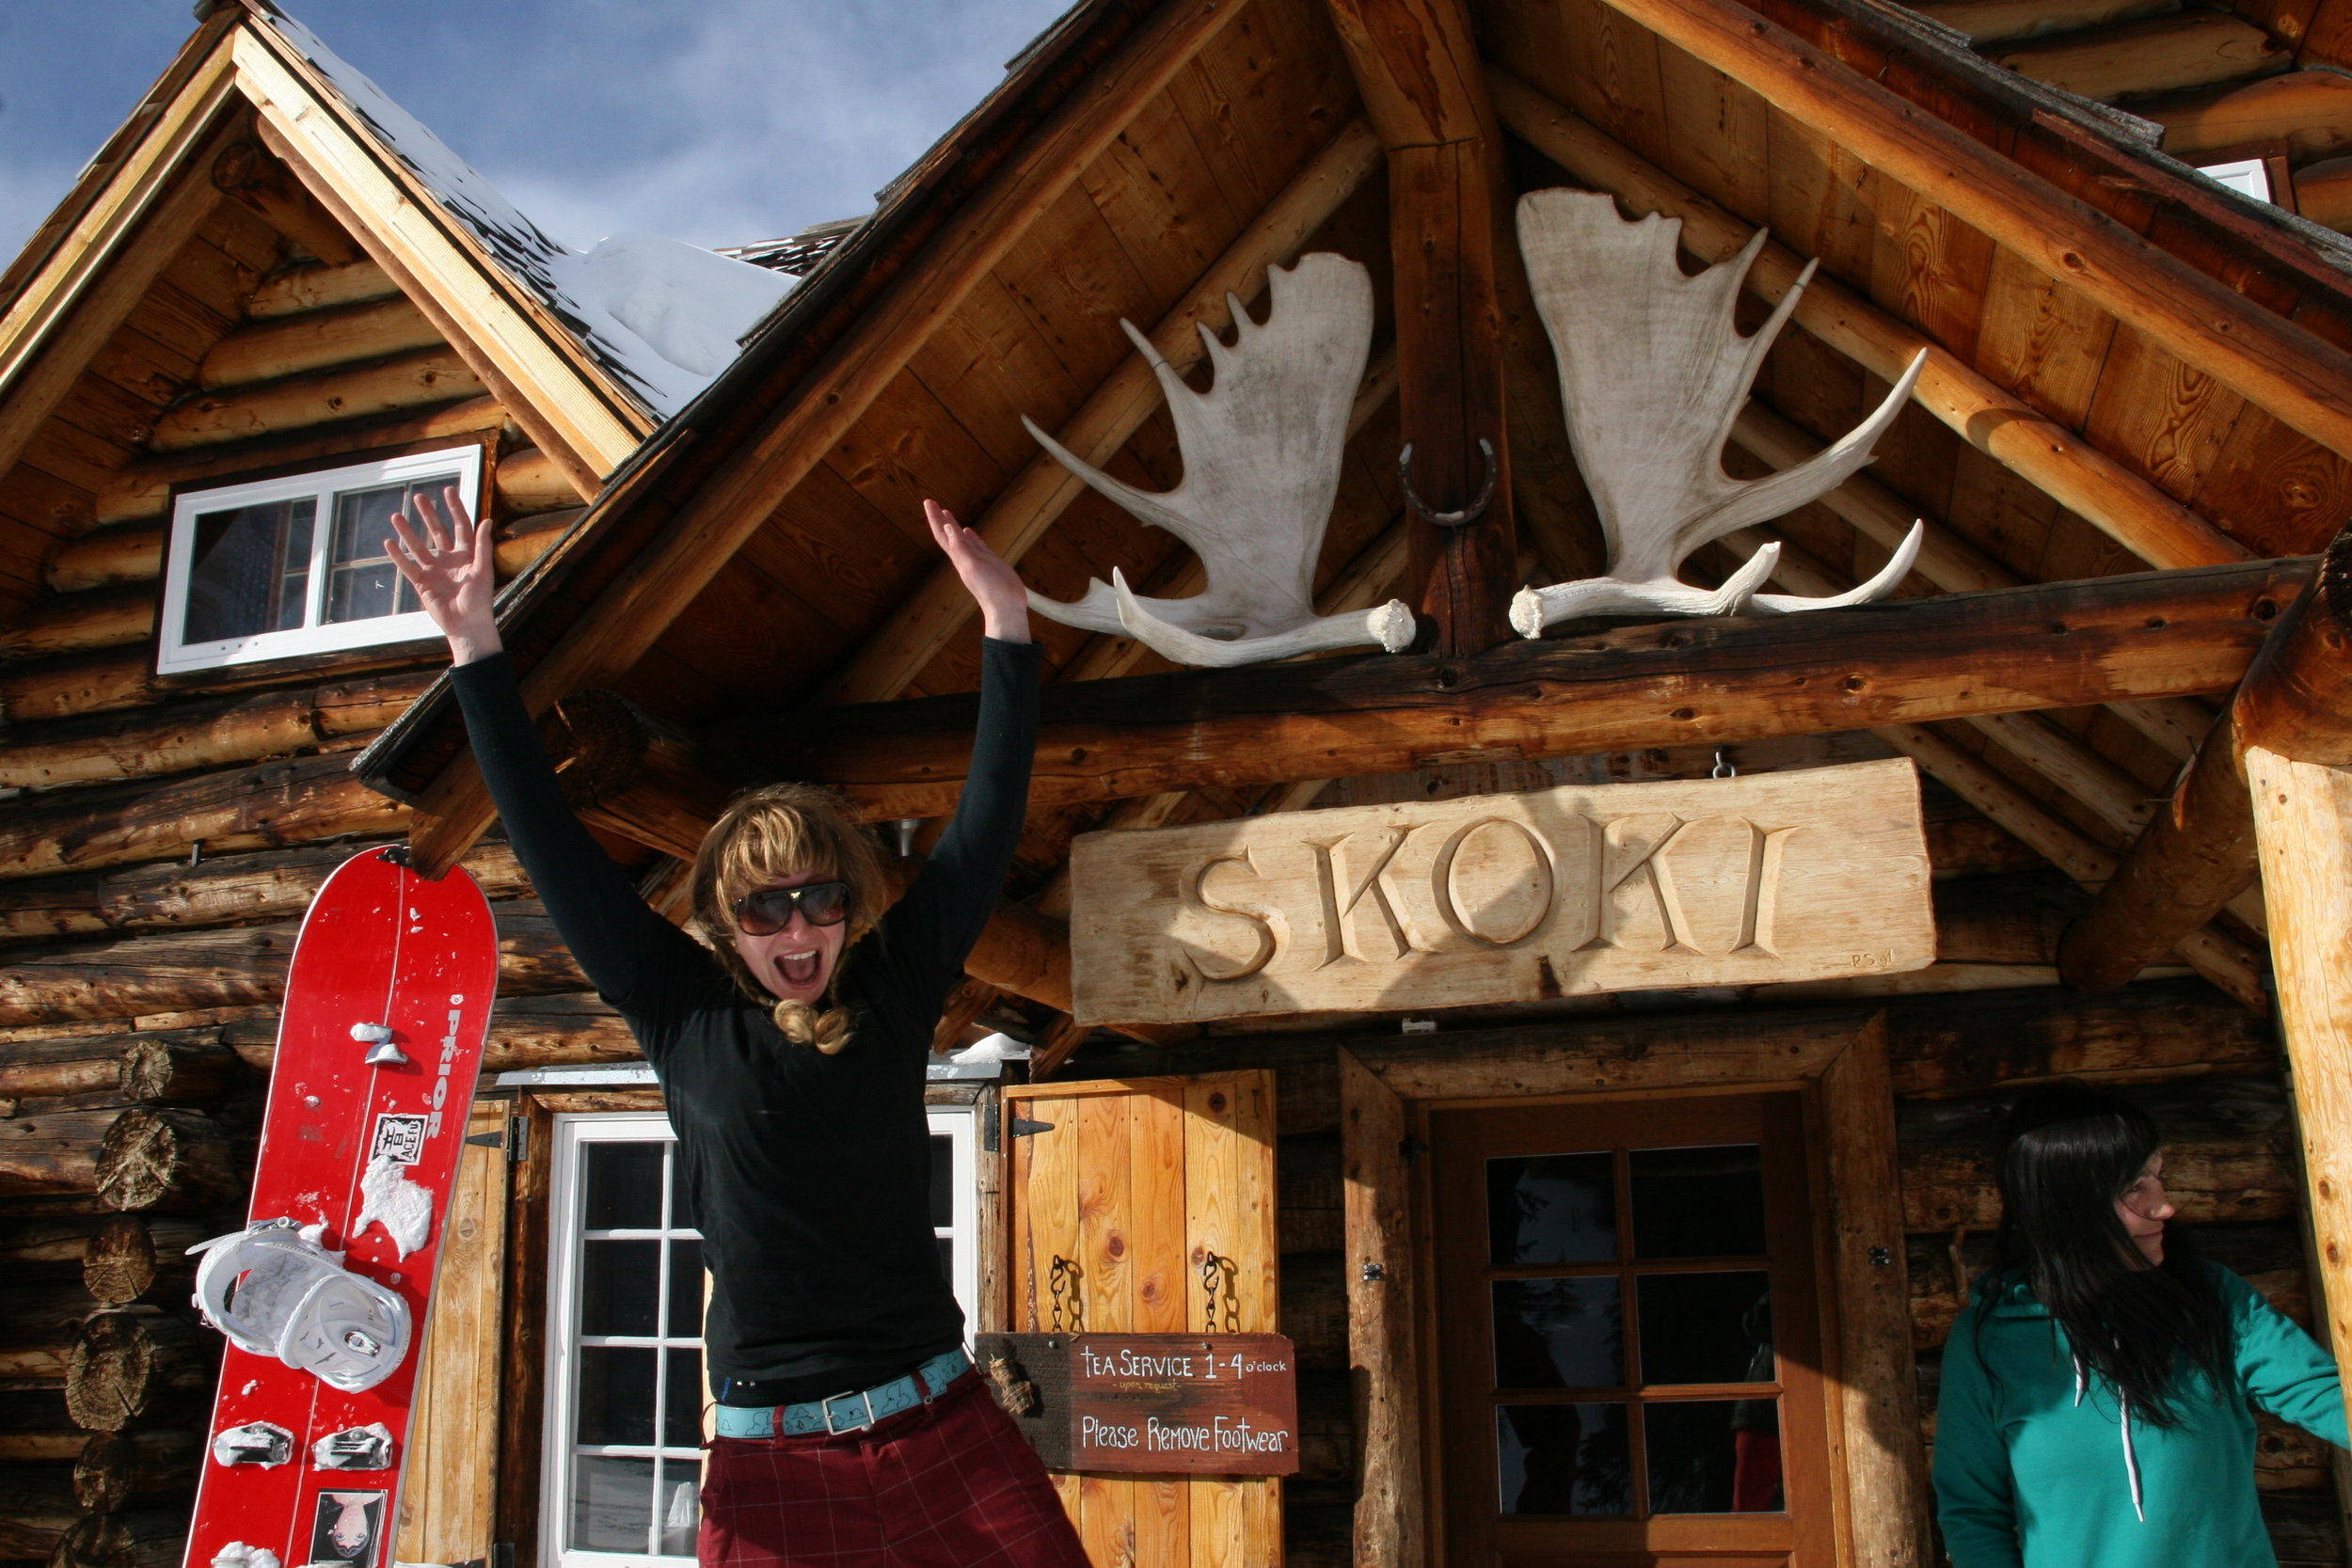 Skoki Lodge is fun! Alberta, Canada CHASEWINTER/SPENCER FRANCEY